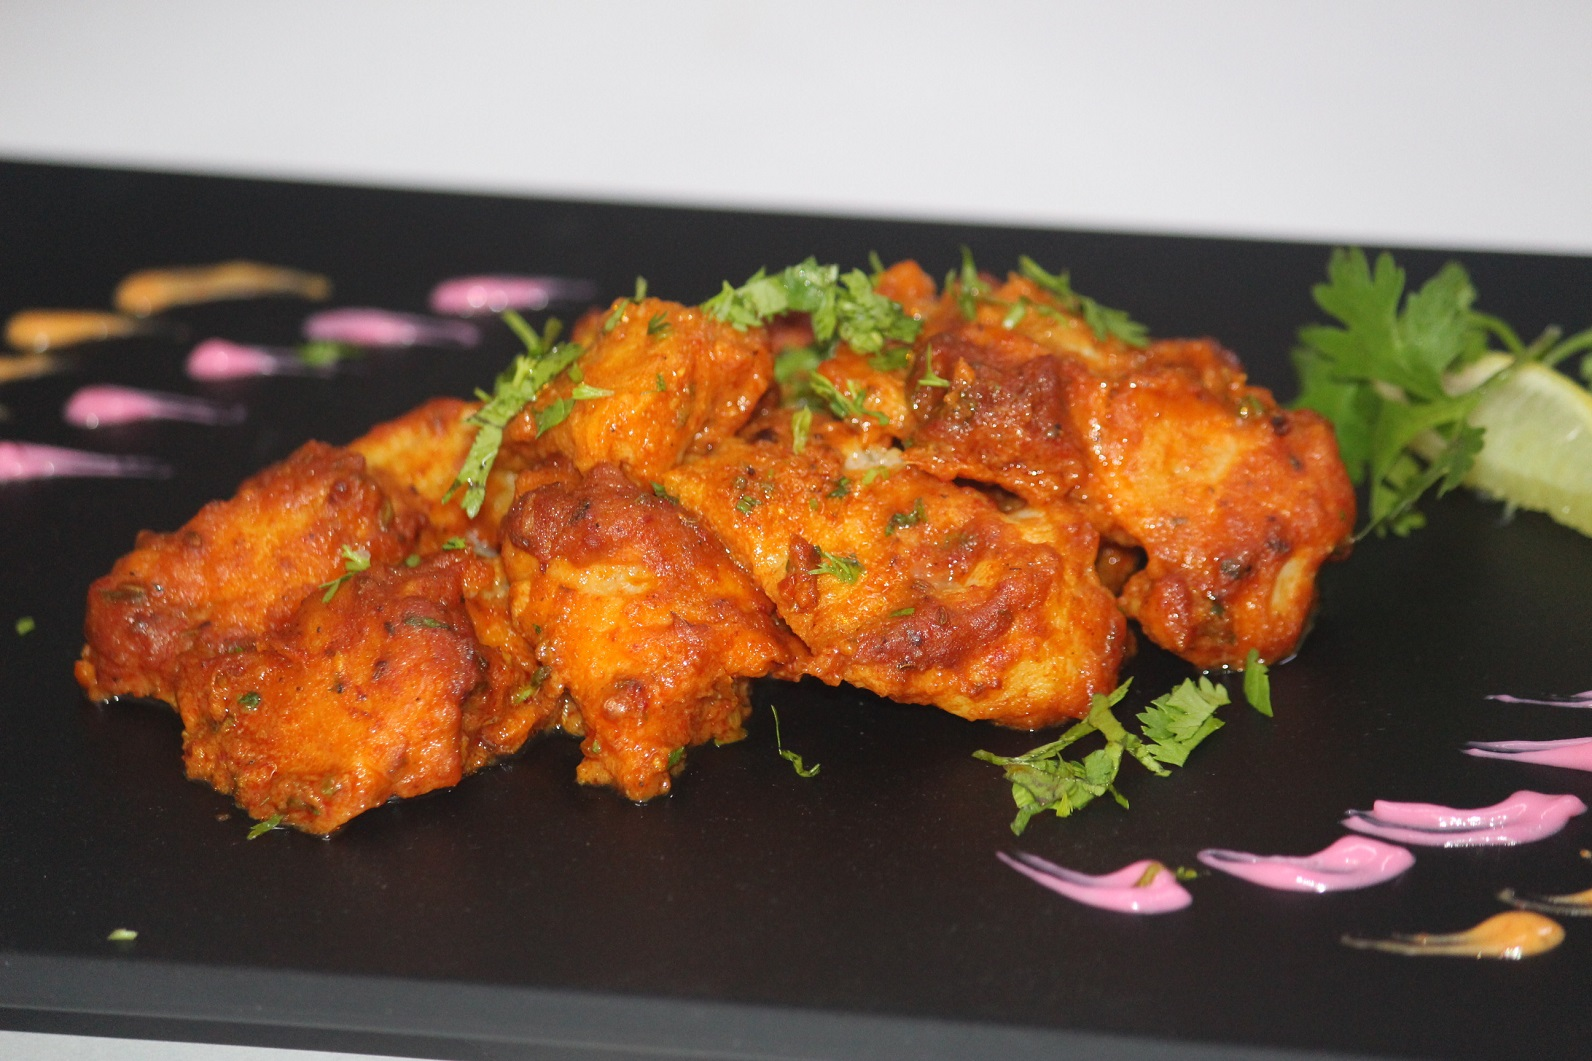 BARBEQUE NATION PRESENTS SEA FOOD FESTIVAL- 'JEWELS OF THE SEA'